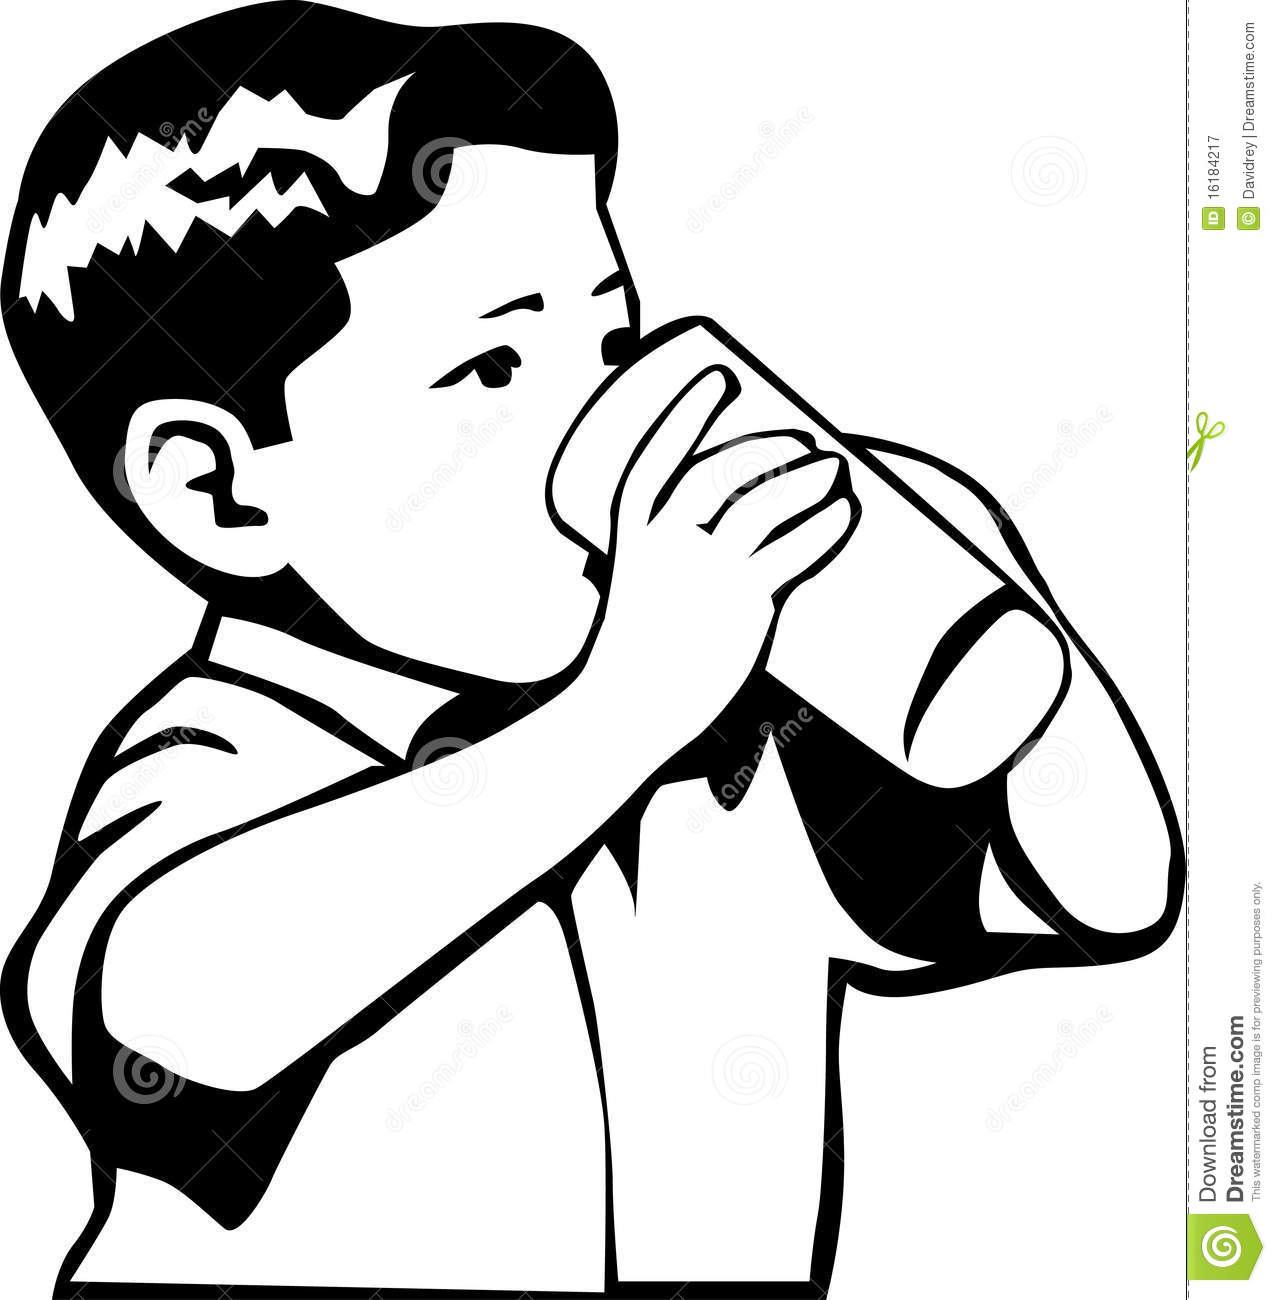 And White Retro Style Illustration Of A -And White Retro Style Illustration Of A Boy Drinking Water Or Milk-4